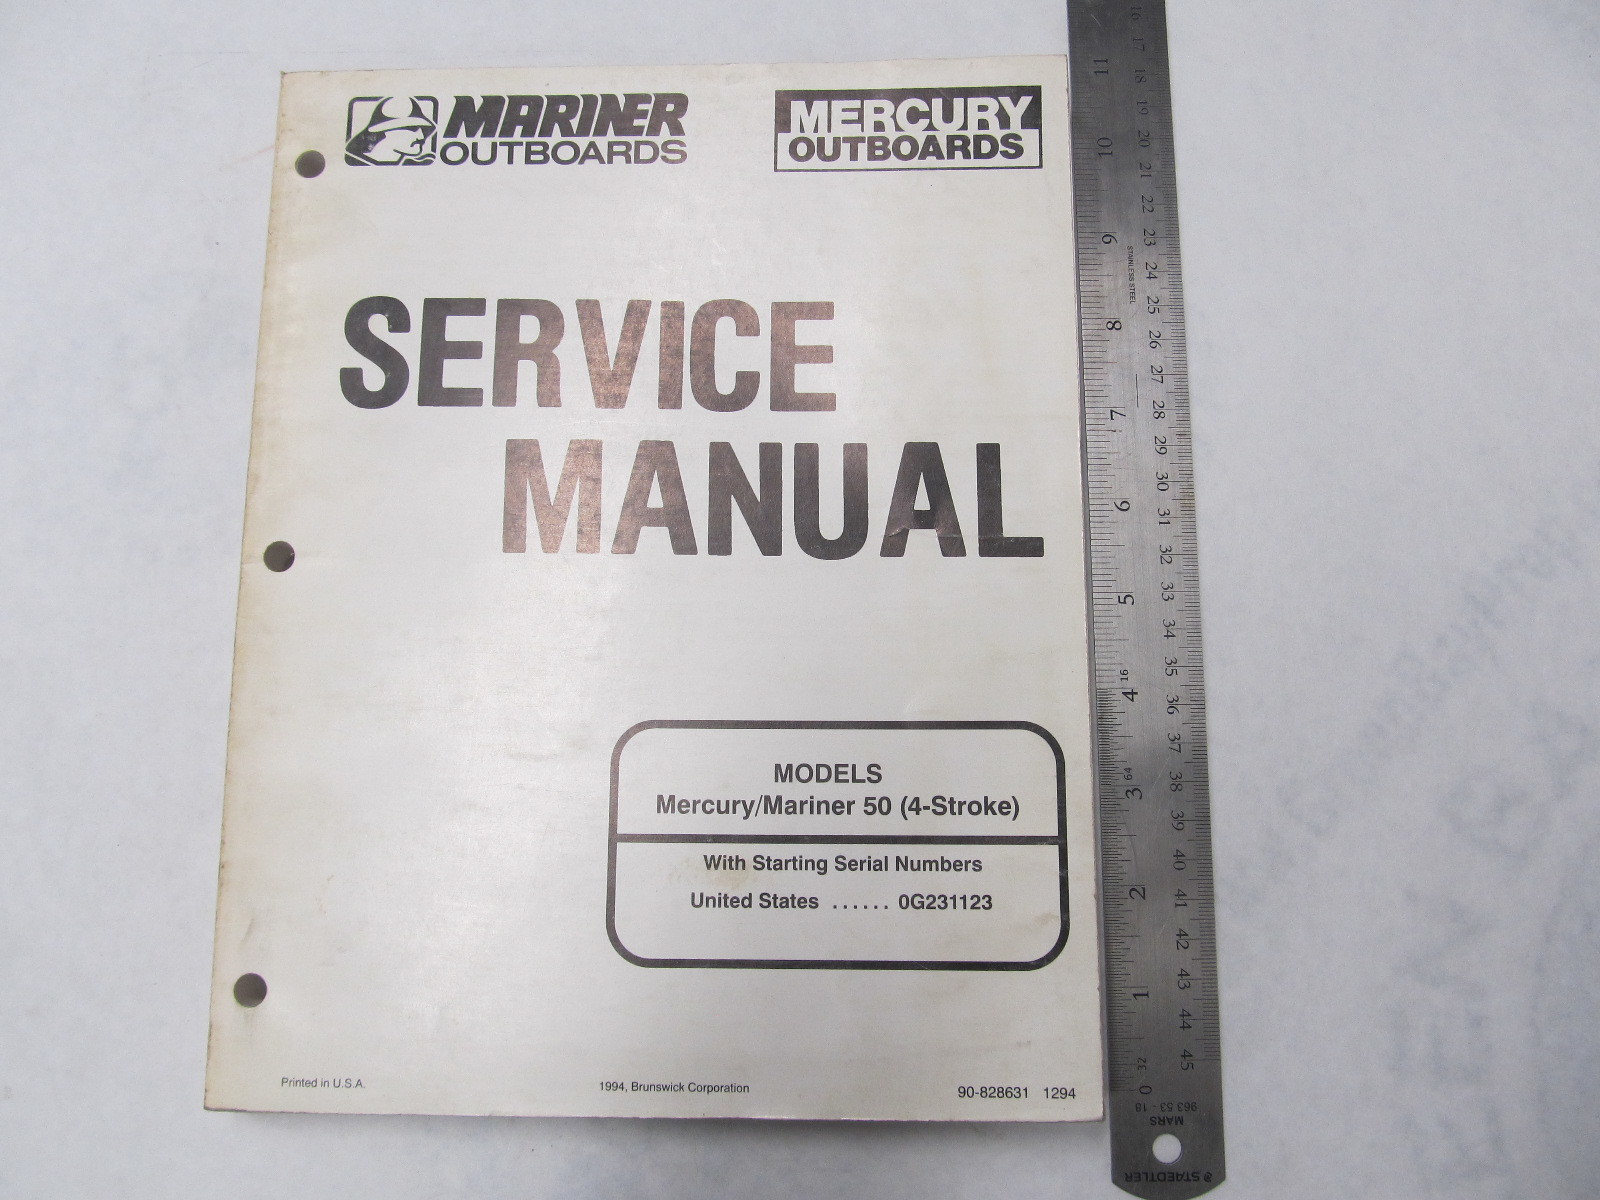 1994 mercury mariner outboard service manual 50 hp 4 stroke ebay rh ebay com HP Laptop User Manual HP Laptop User Manual